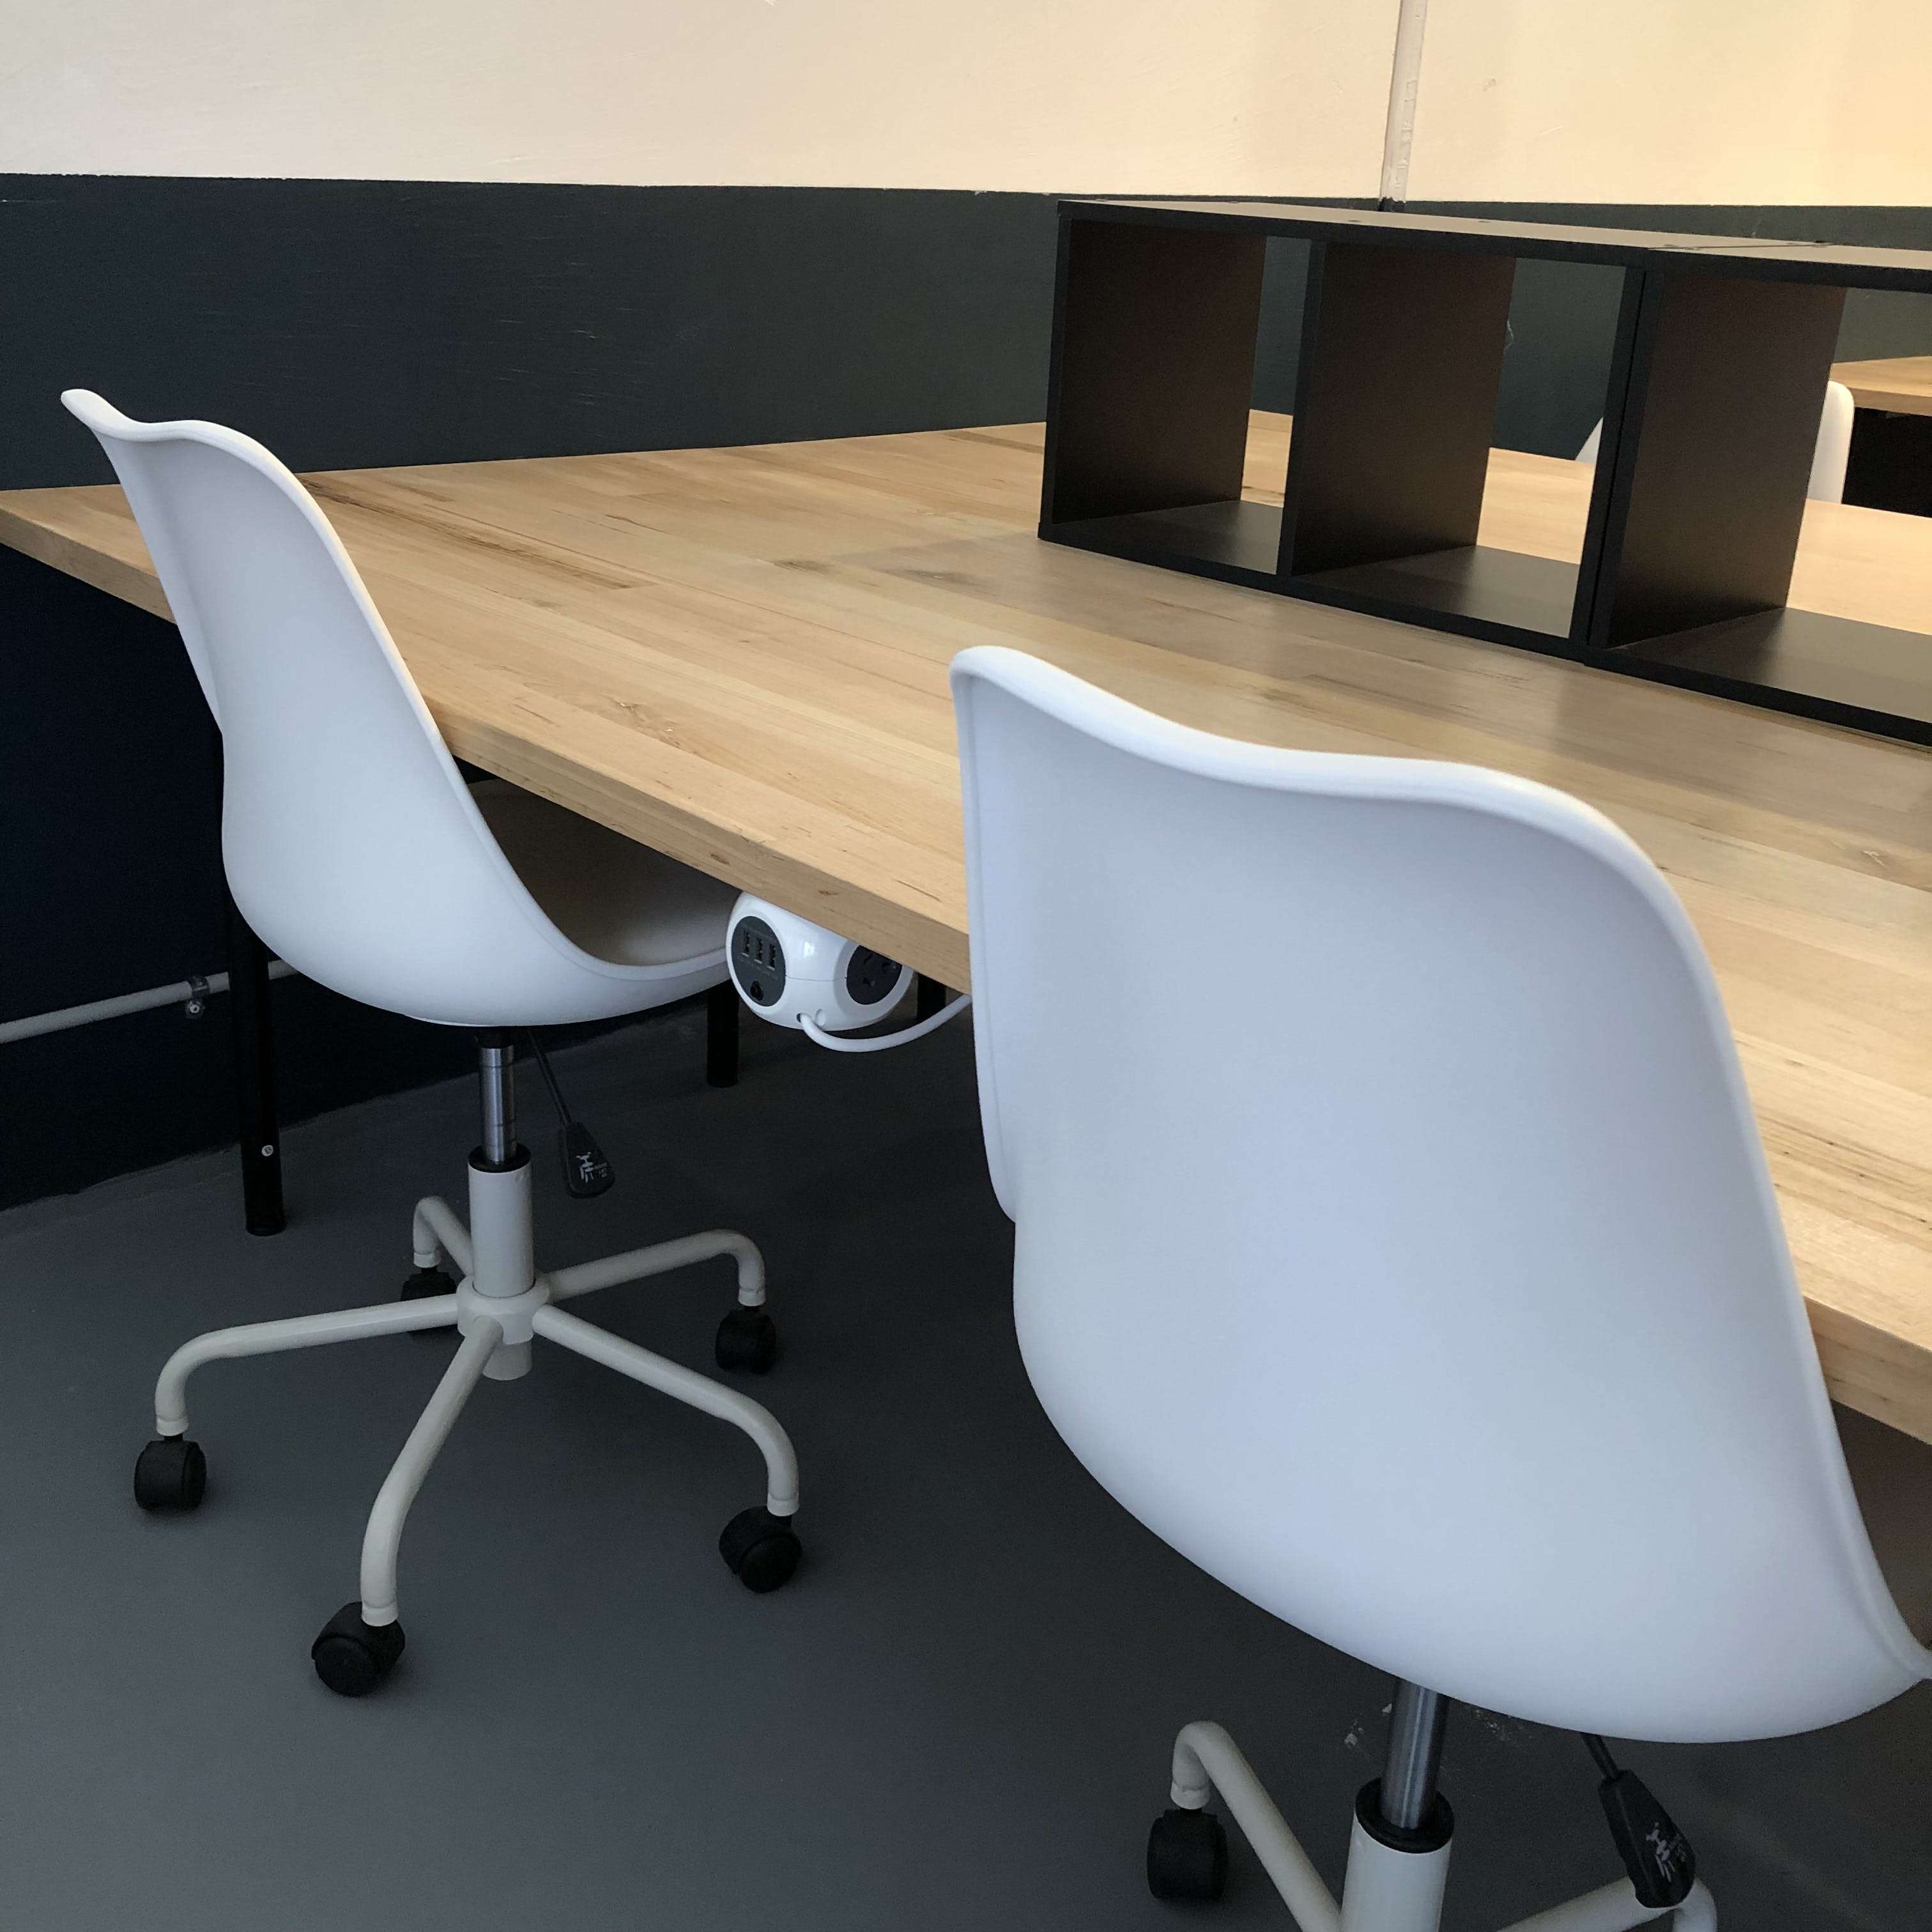 Casual Hot Desk Half Day 1-5.30, hot desk at Bridge Coworking Meeting and Event Space Geelong, image 1